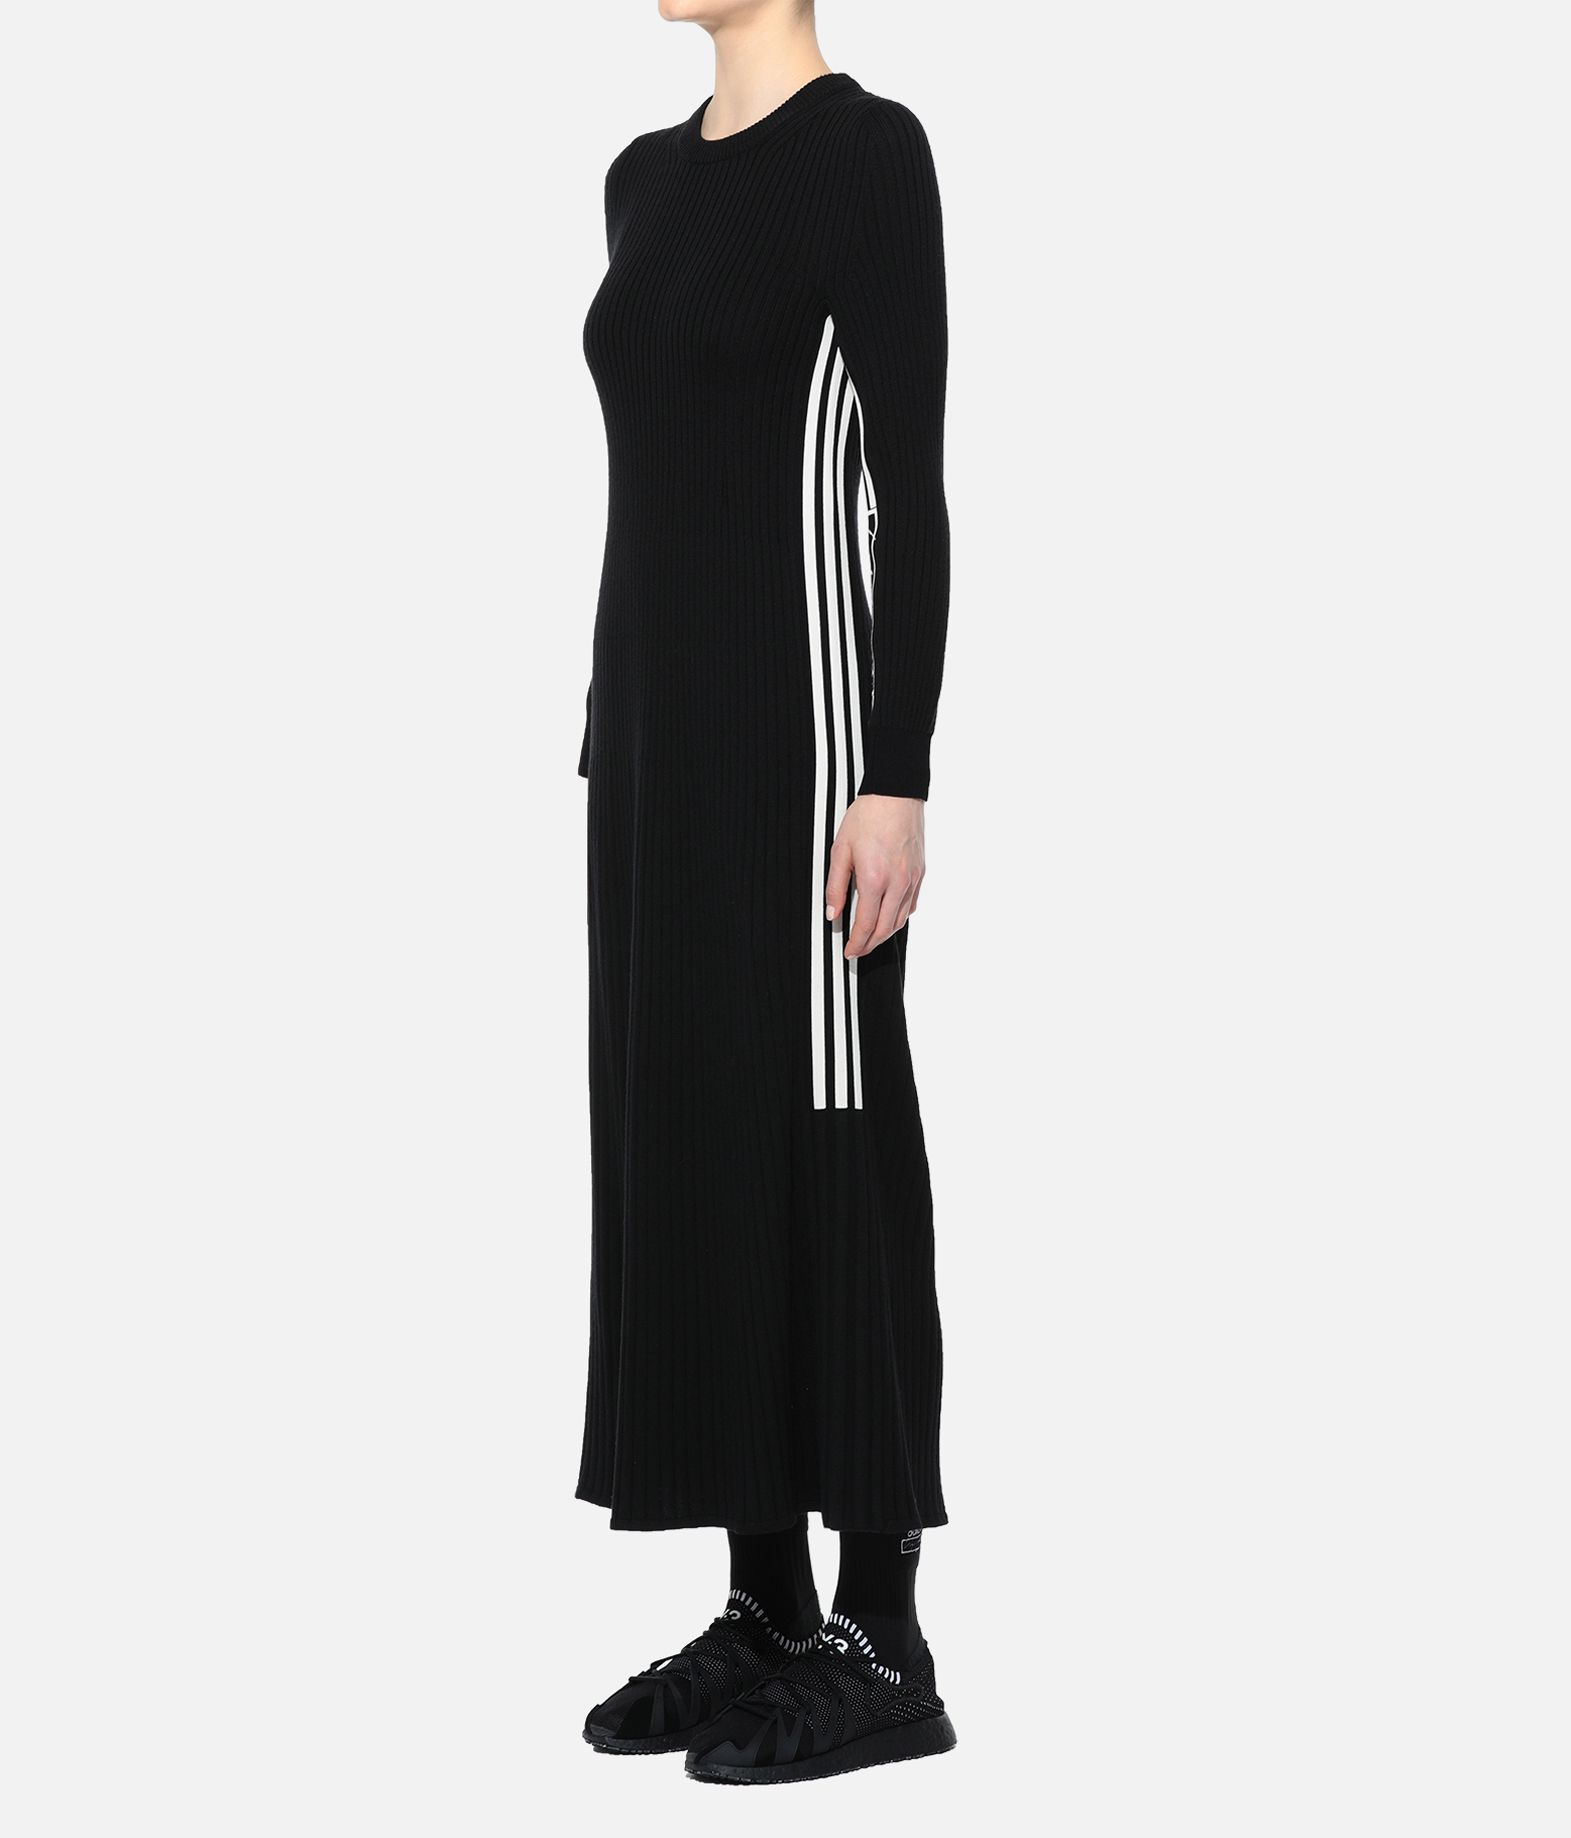 Y-3 Y-3 Tech Knit Dress Long dress Woman e